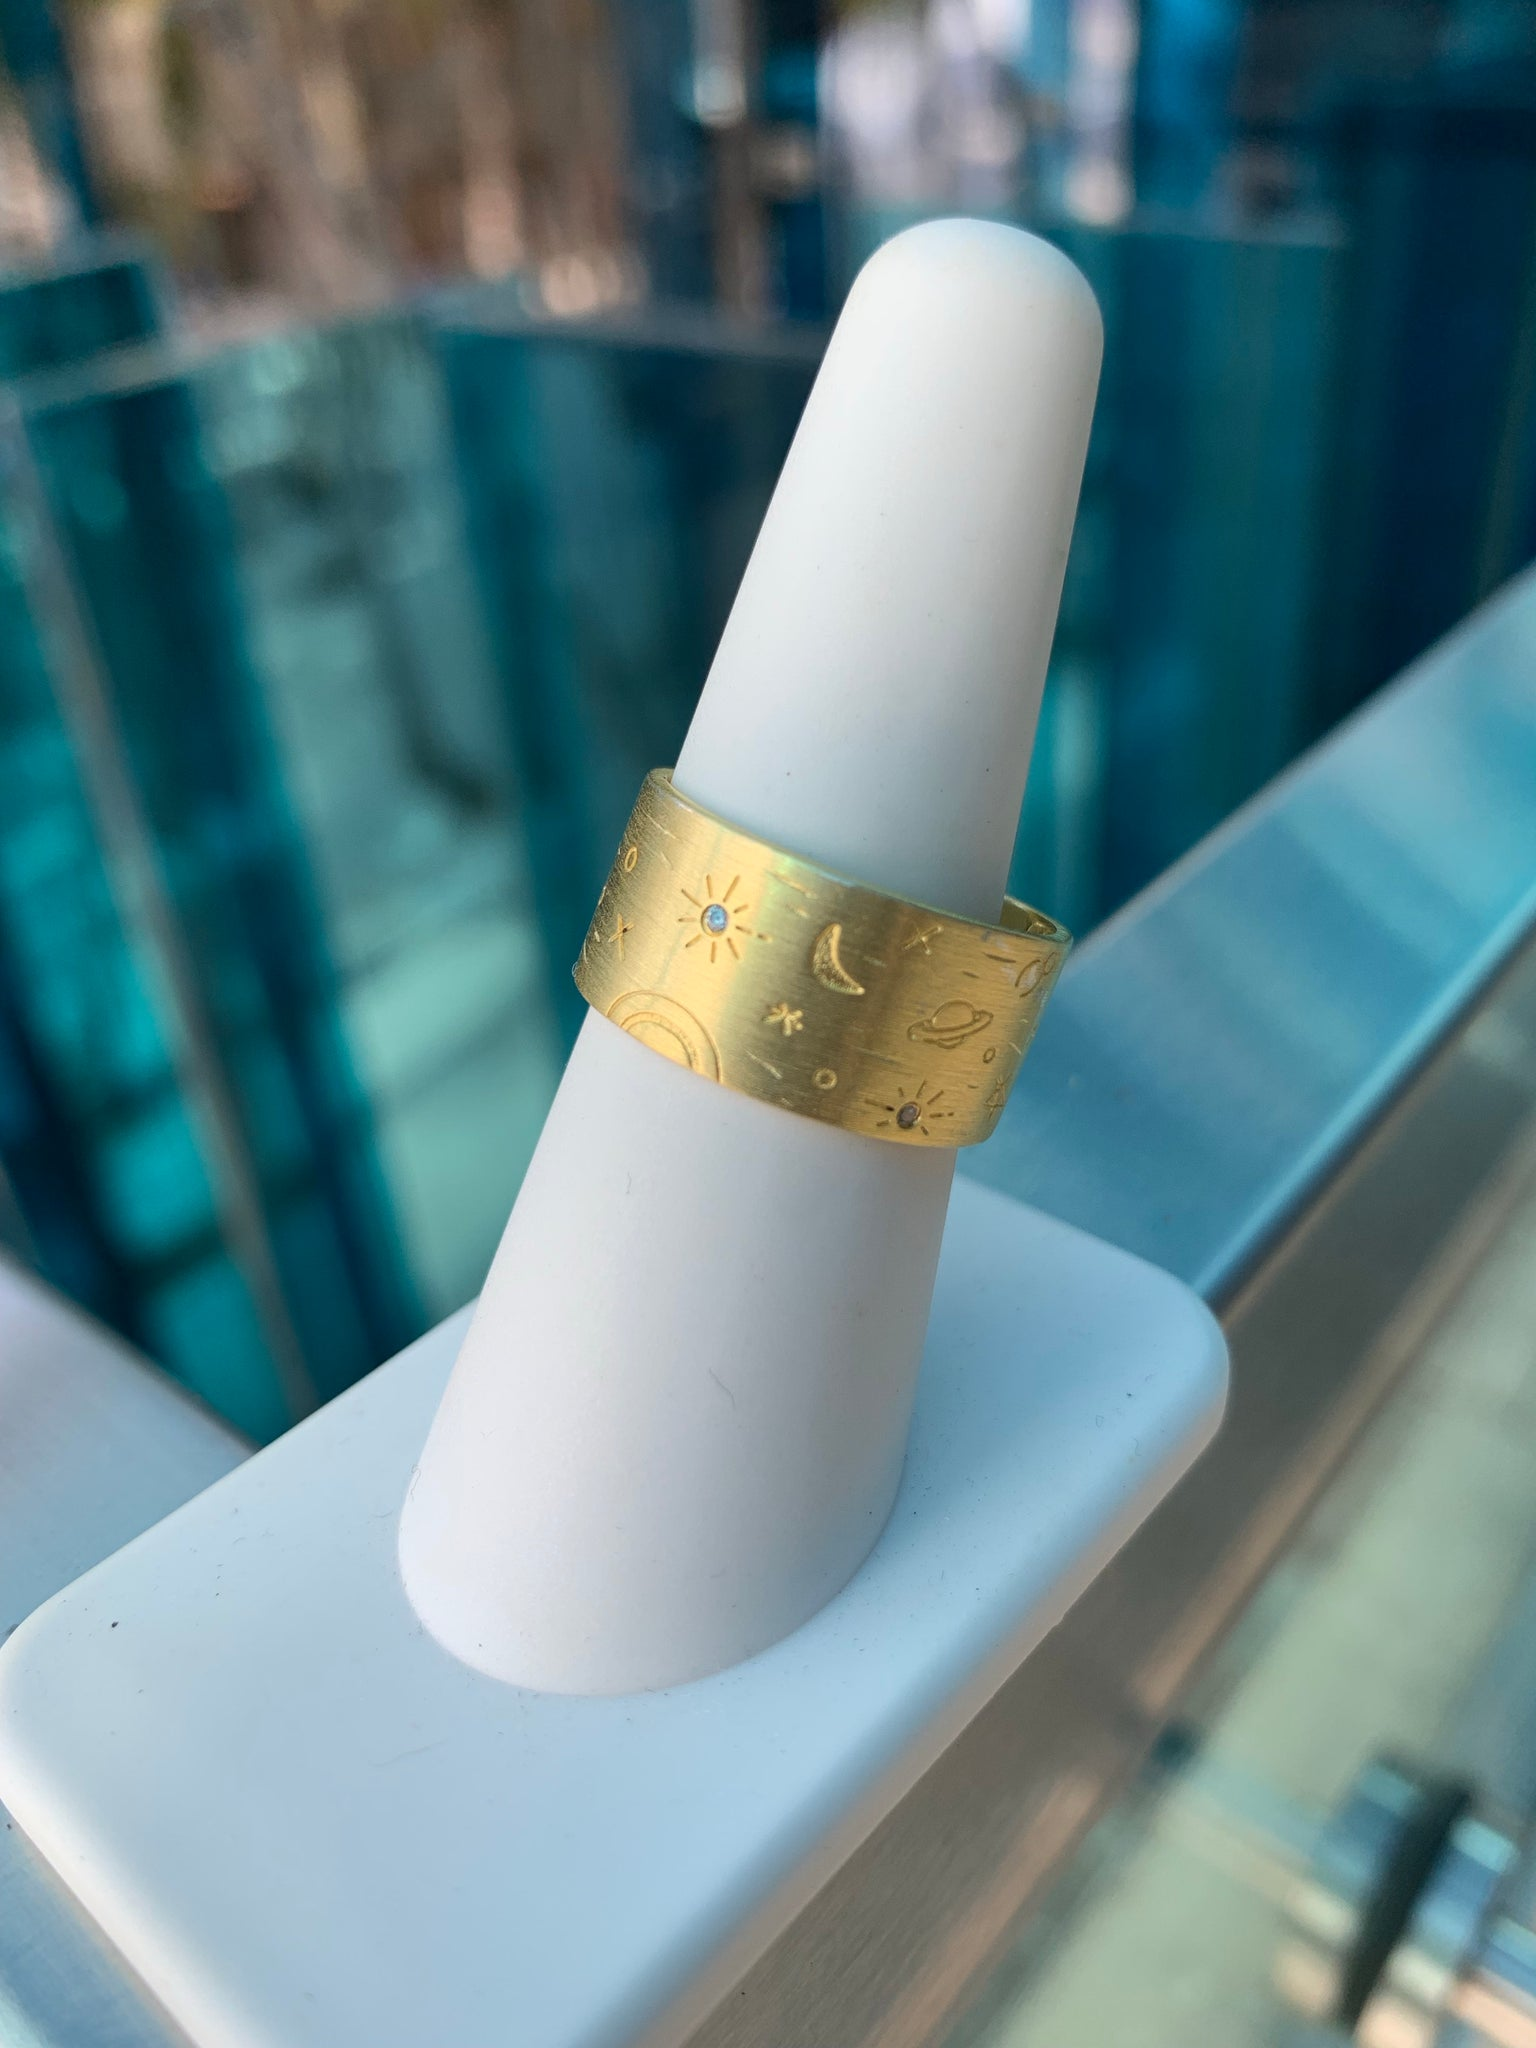 Planet stars 24k gold plated ring